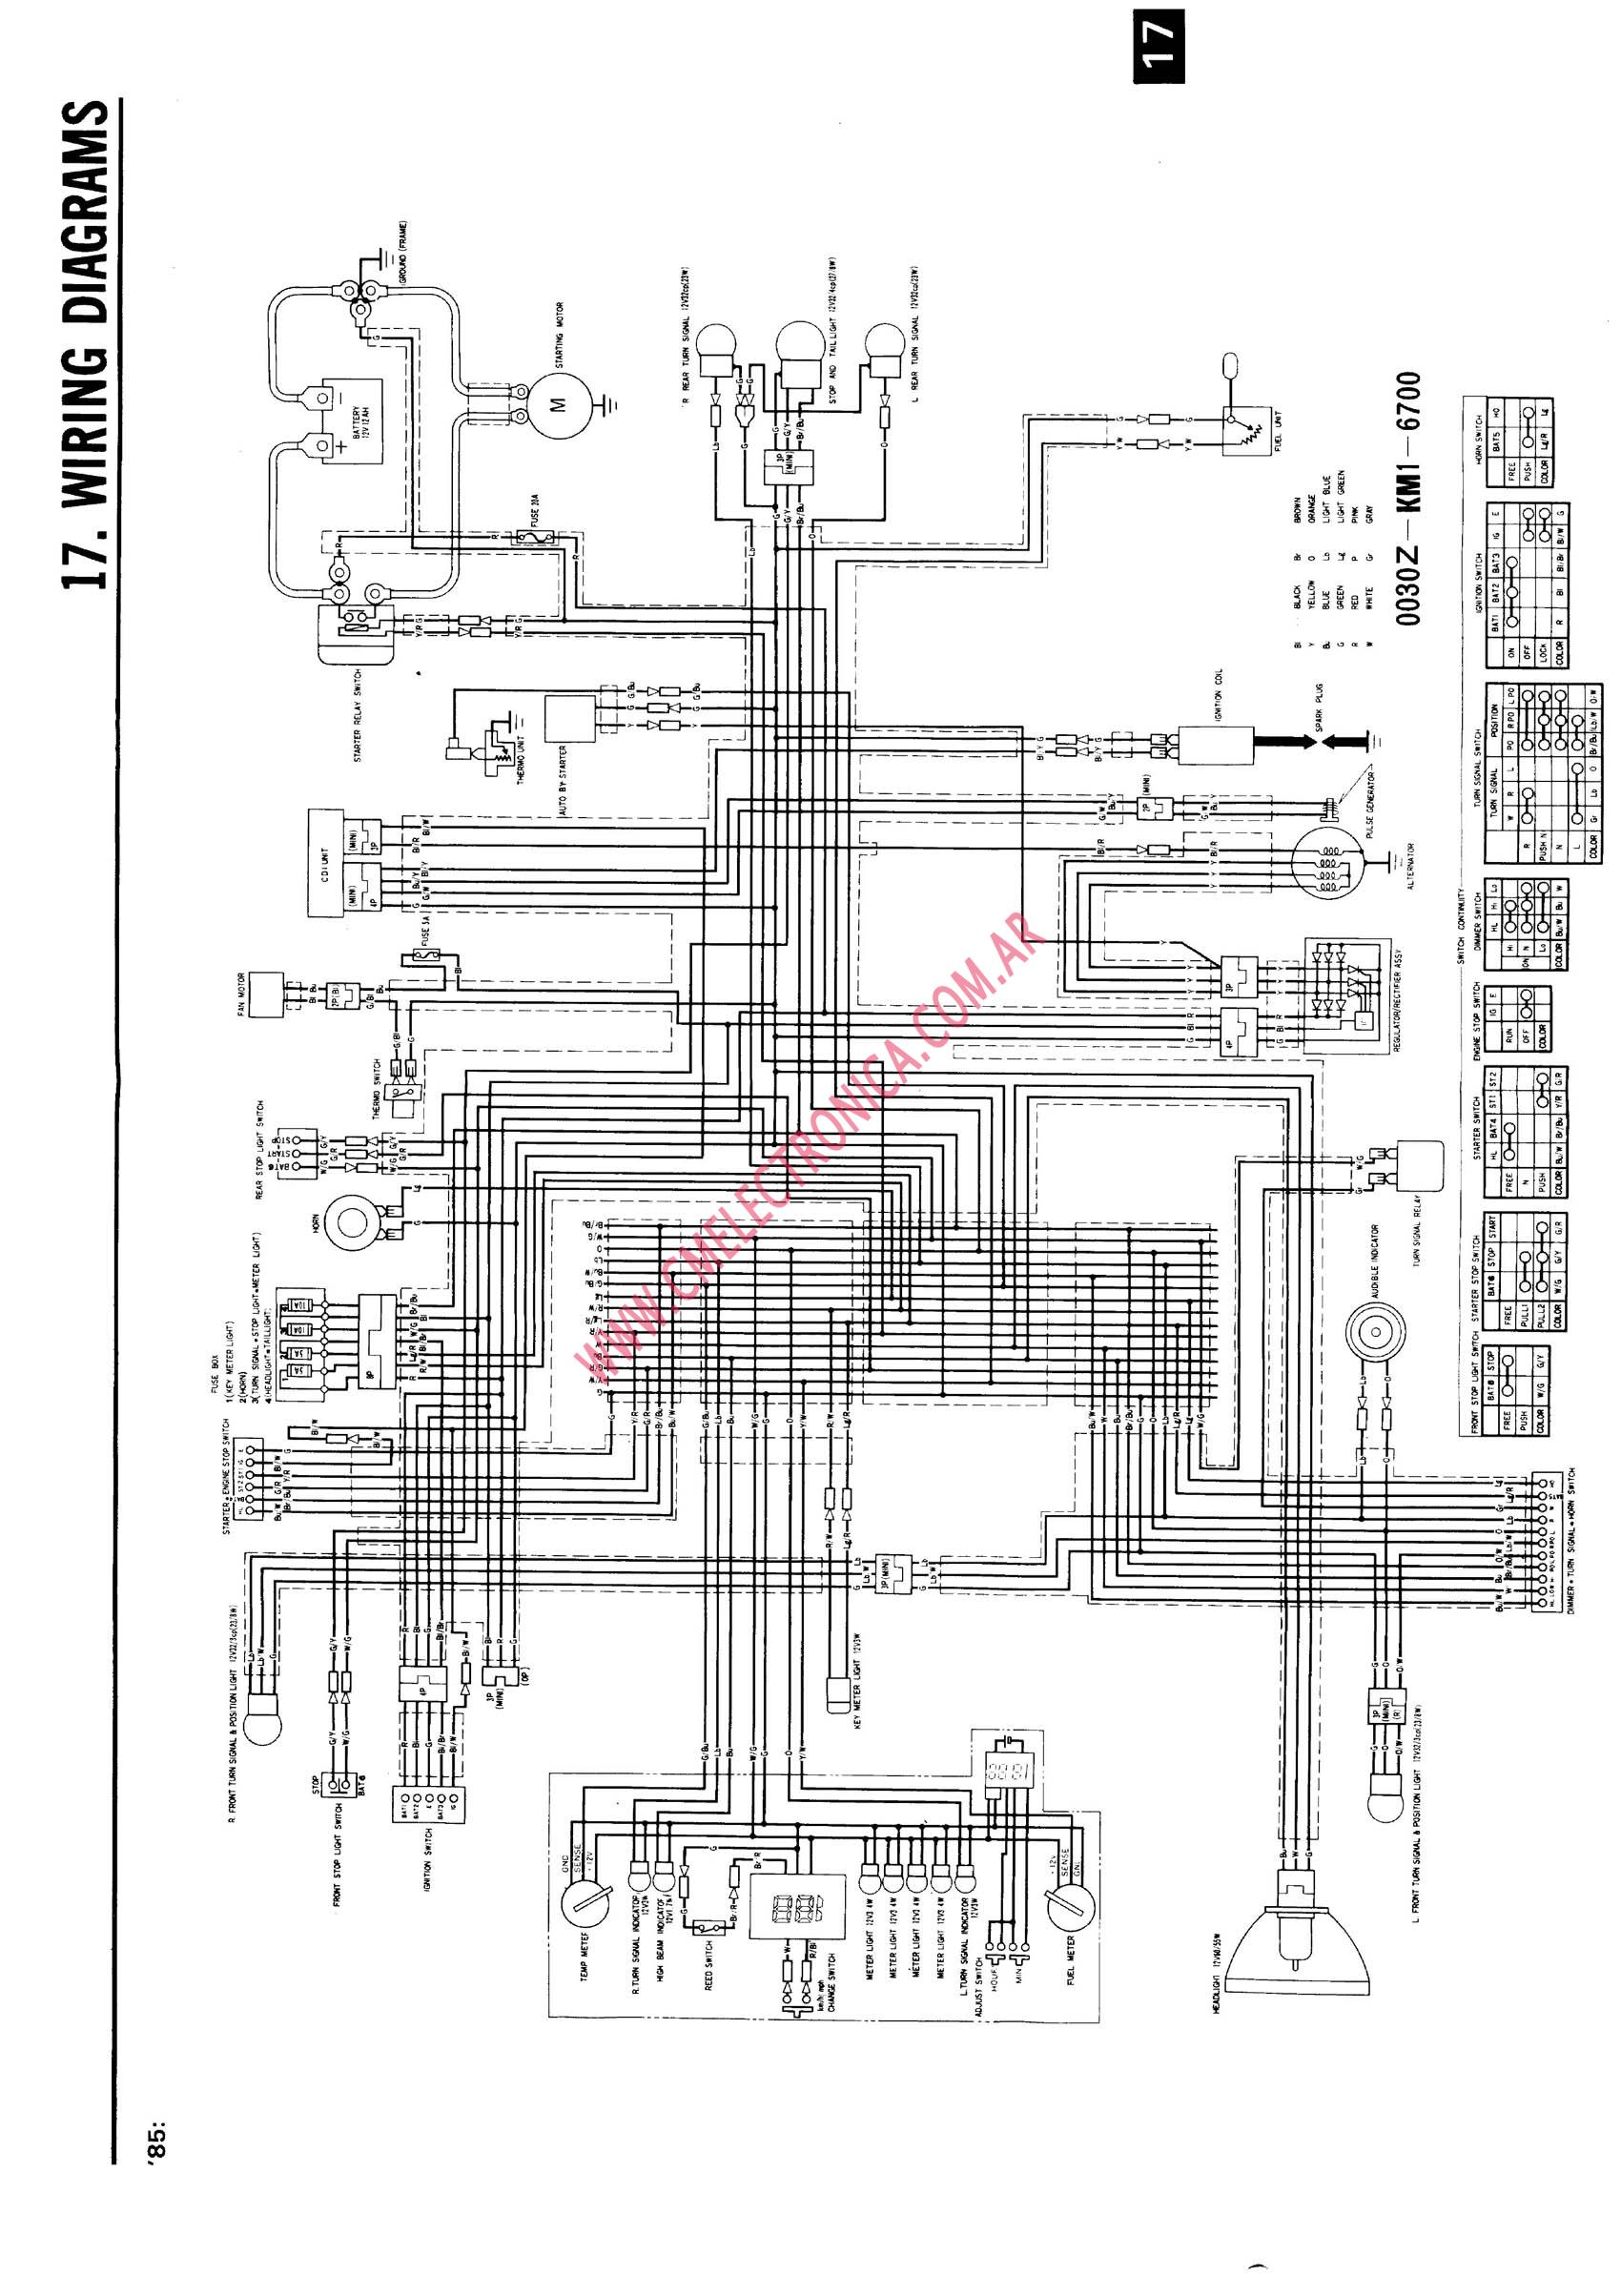 Wiring Diagram Honda Scooter : Honda elite engine wiring diagram get free image